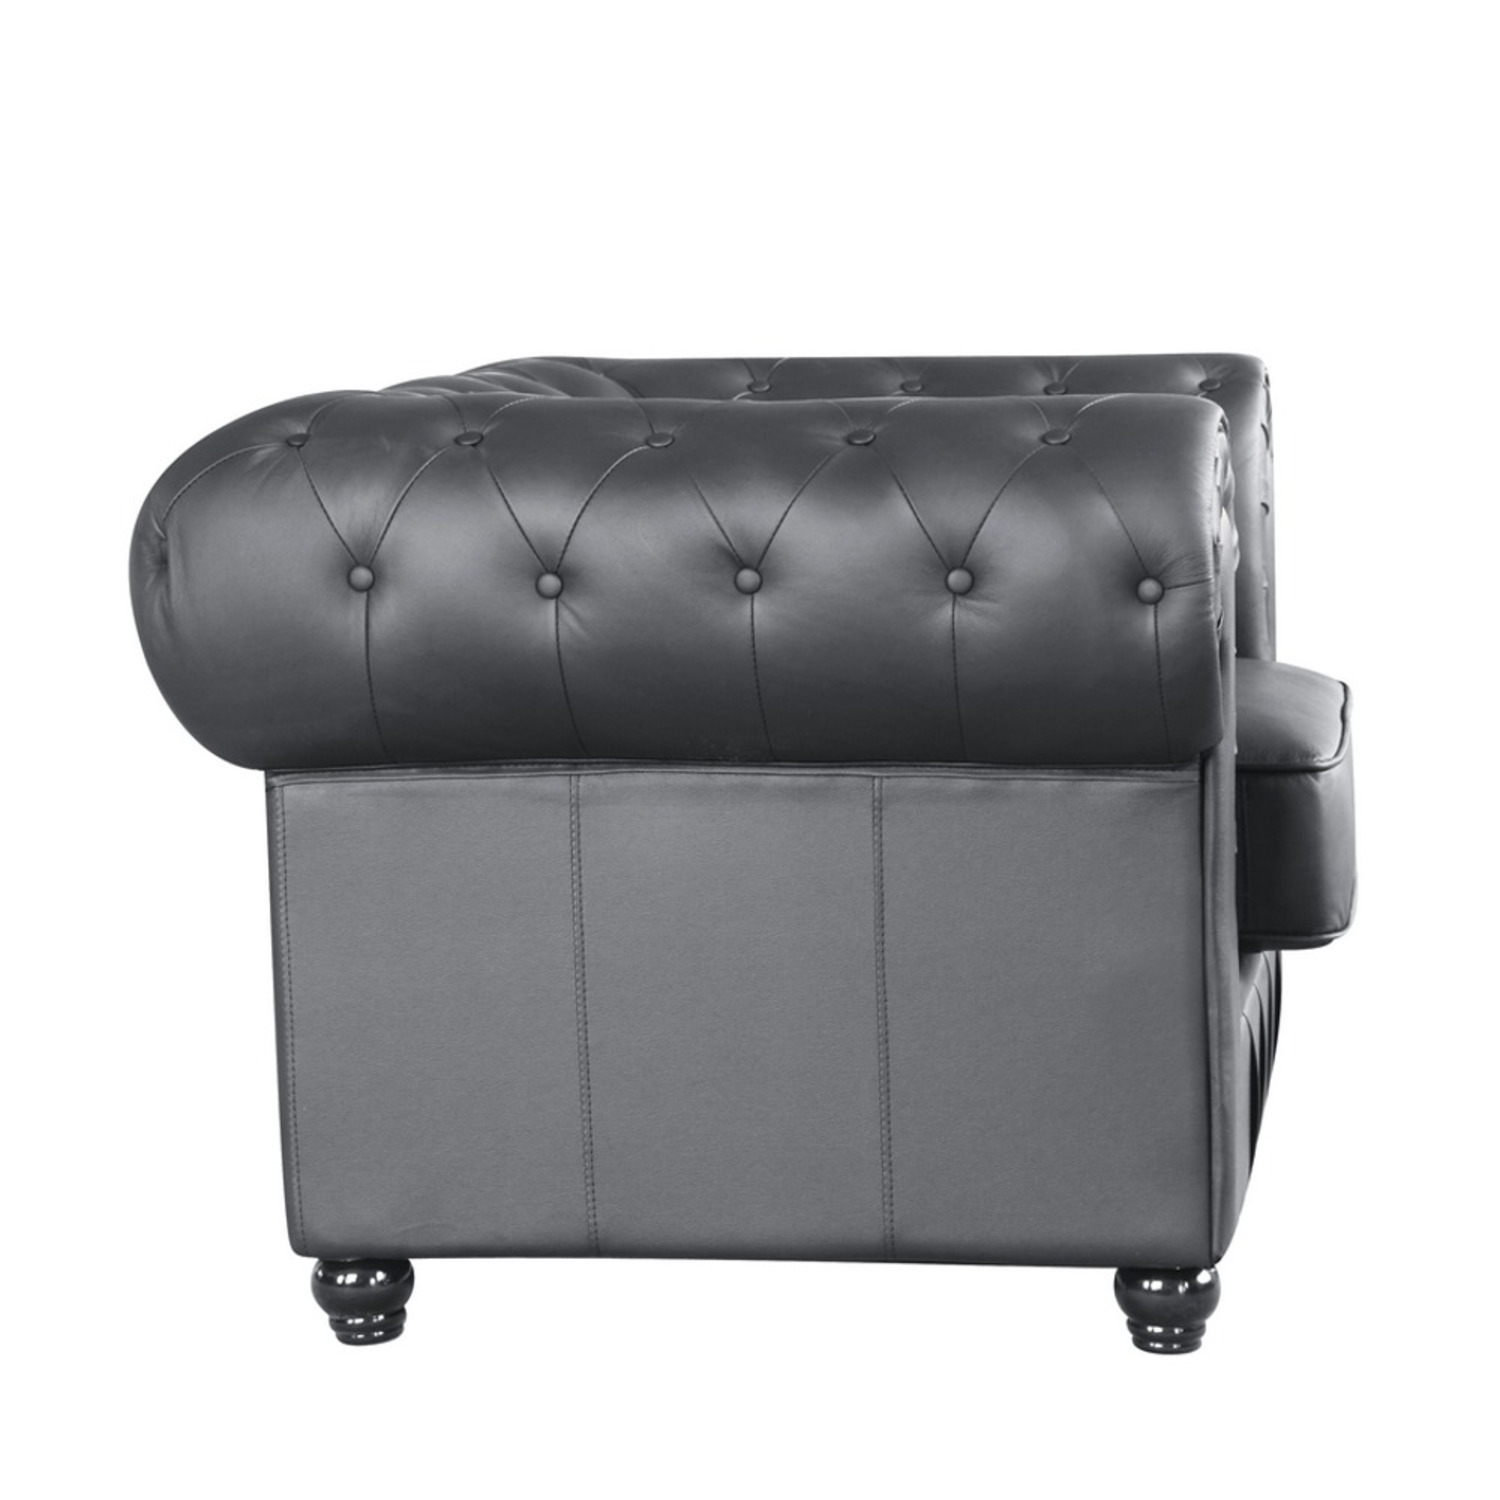 Modern Chair In Soft Black Leatherette - image-1